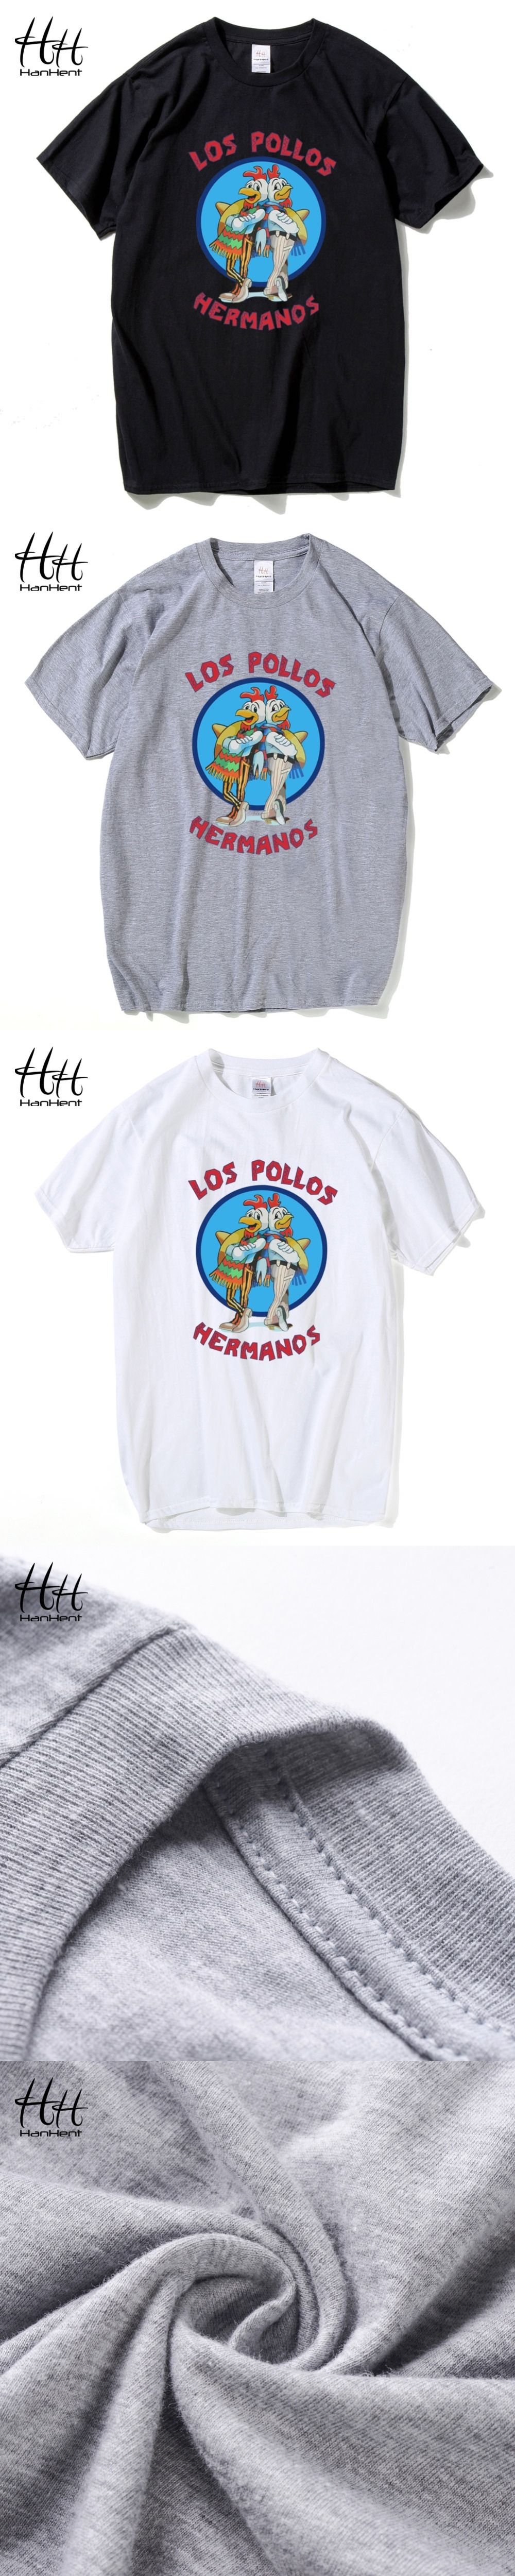 HanHent Los Pollos Hermanos T Shirts Men Breaking Bad T-shirts Sitcoms  Summer Cotton Fitness e52bd5e9a17c